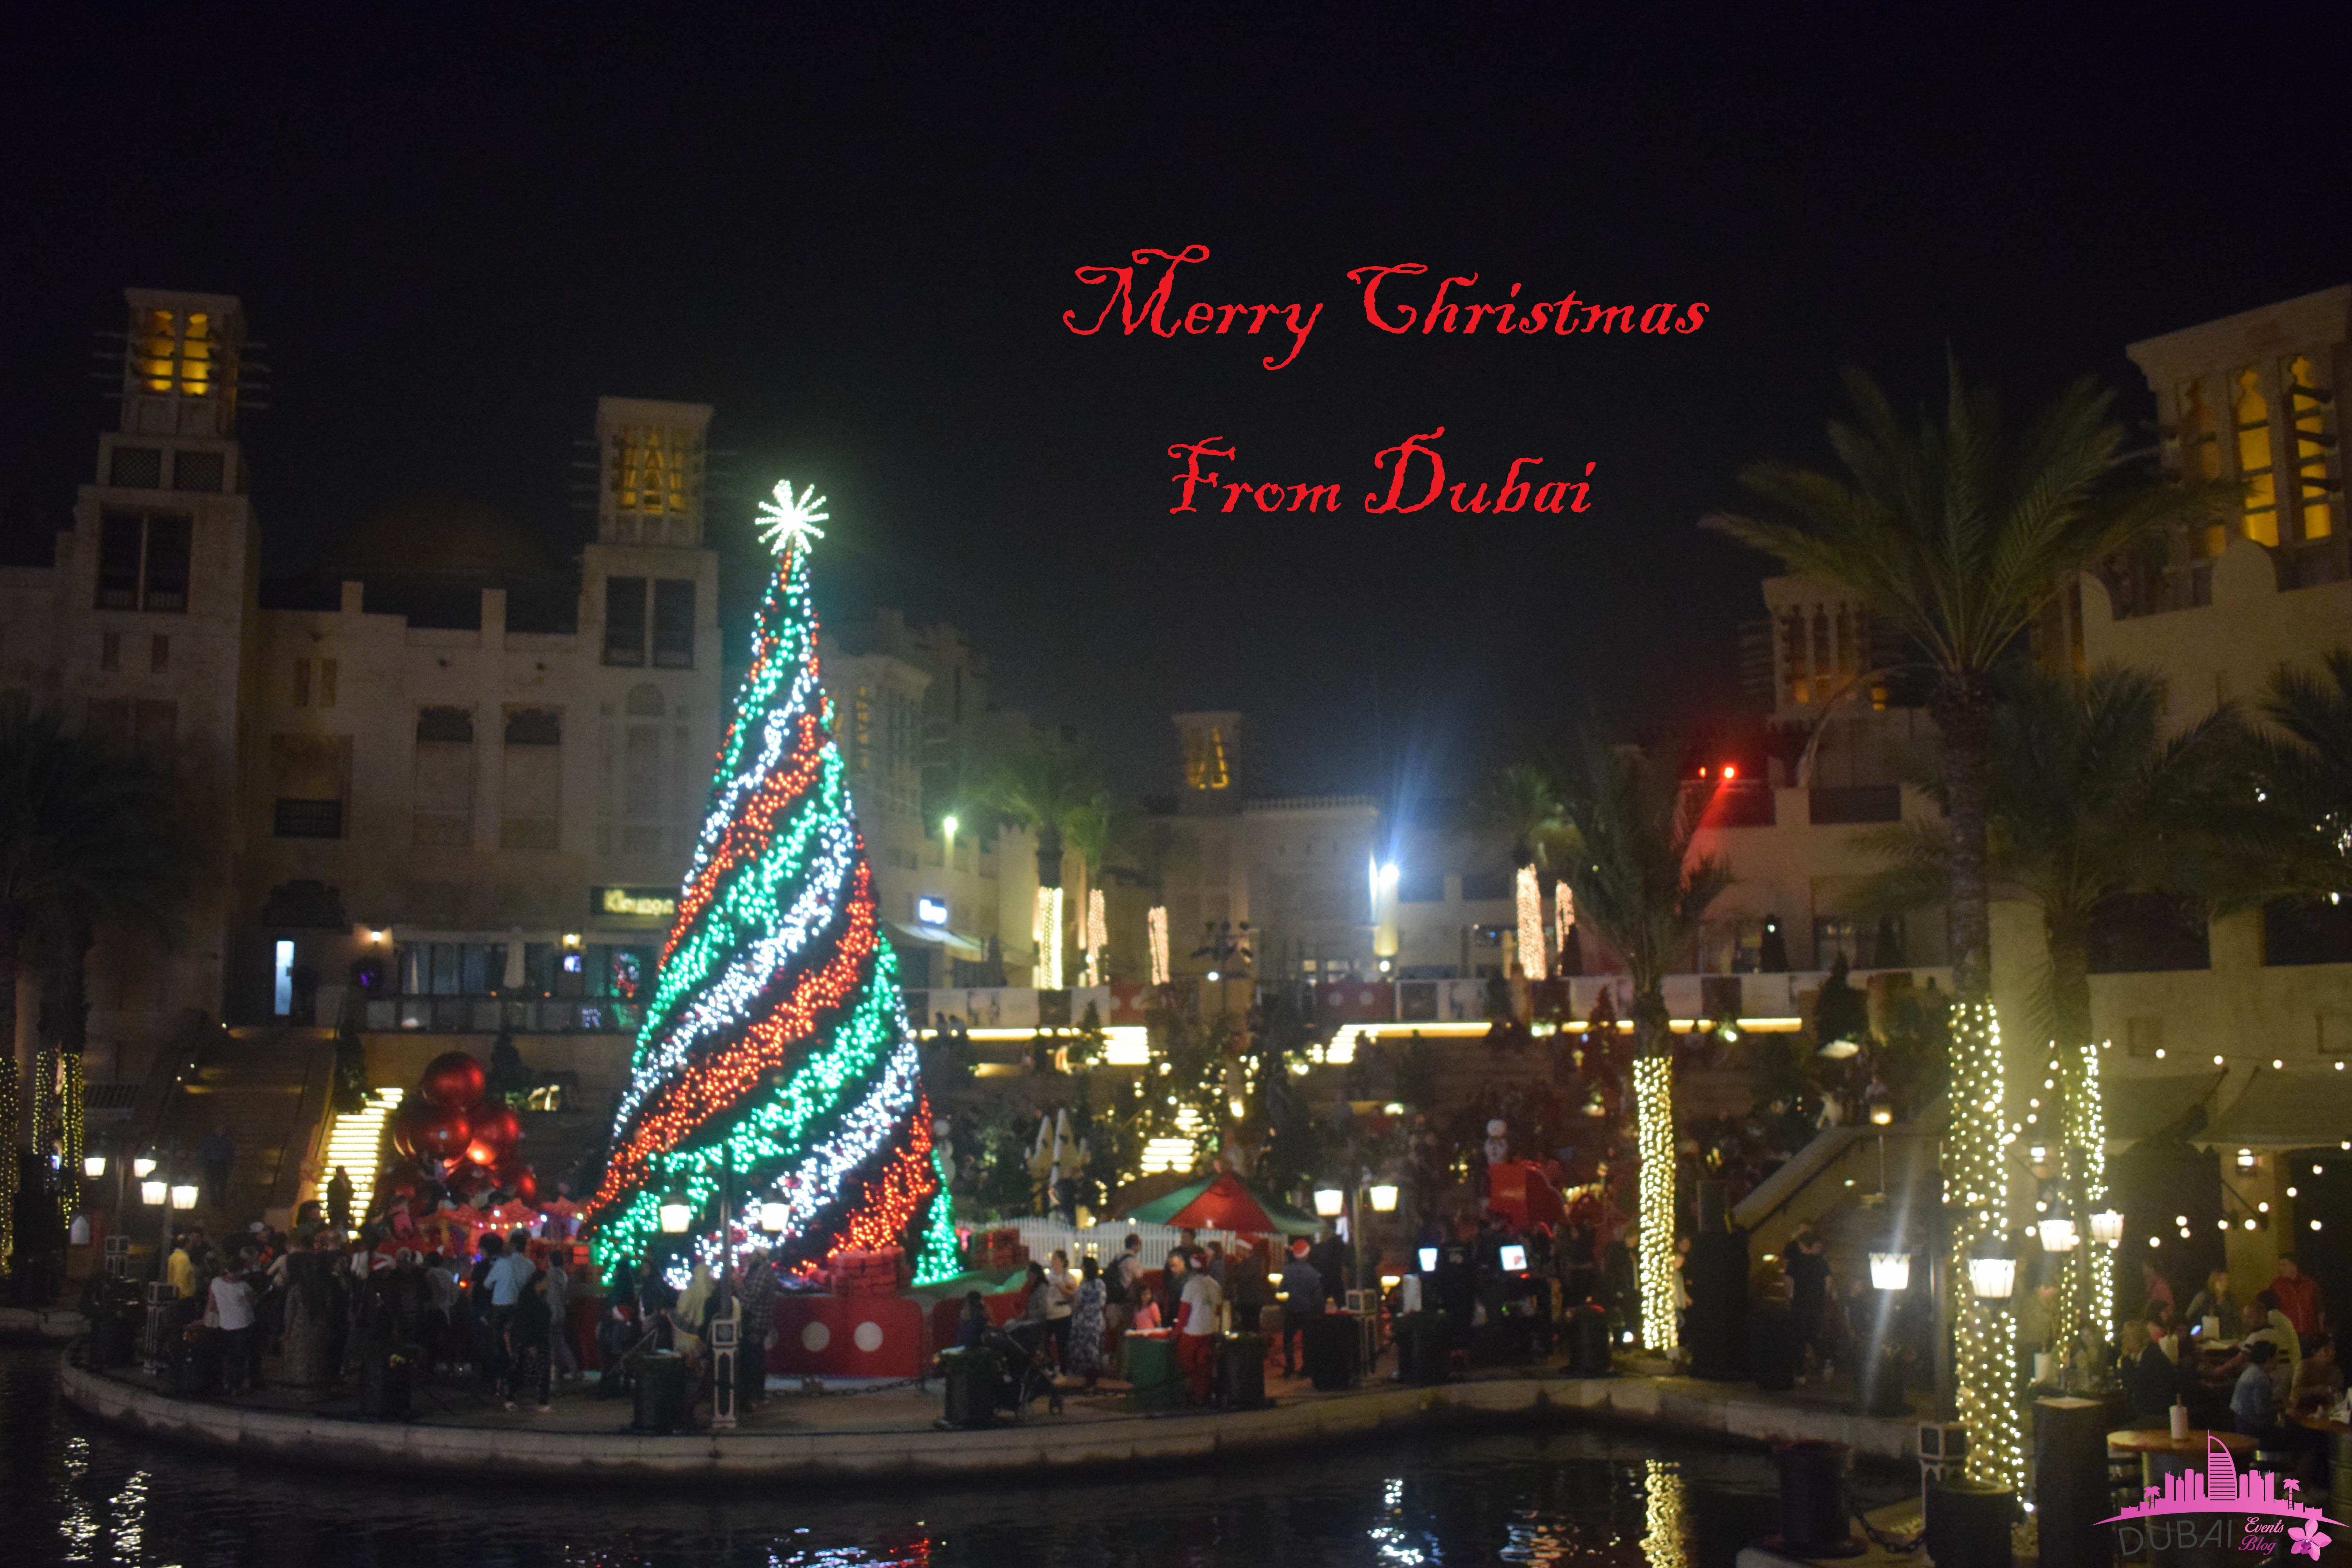 christmas parties in dubai nightlife 24th 25th december 2017 - Why Is Christmas On The 25th